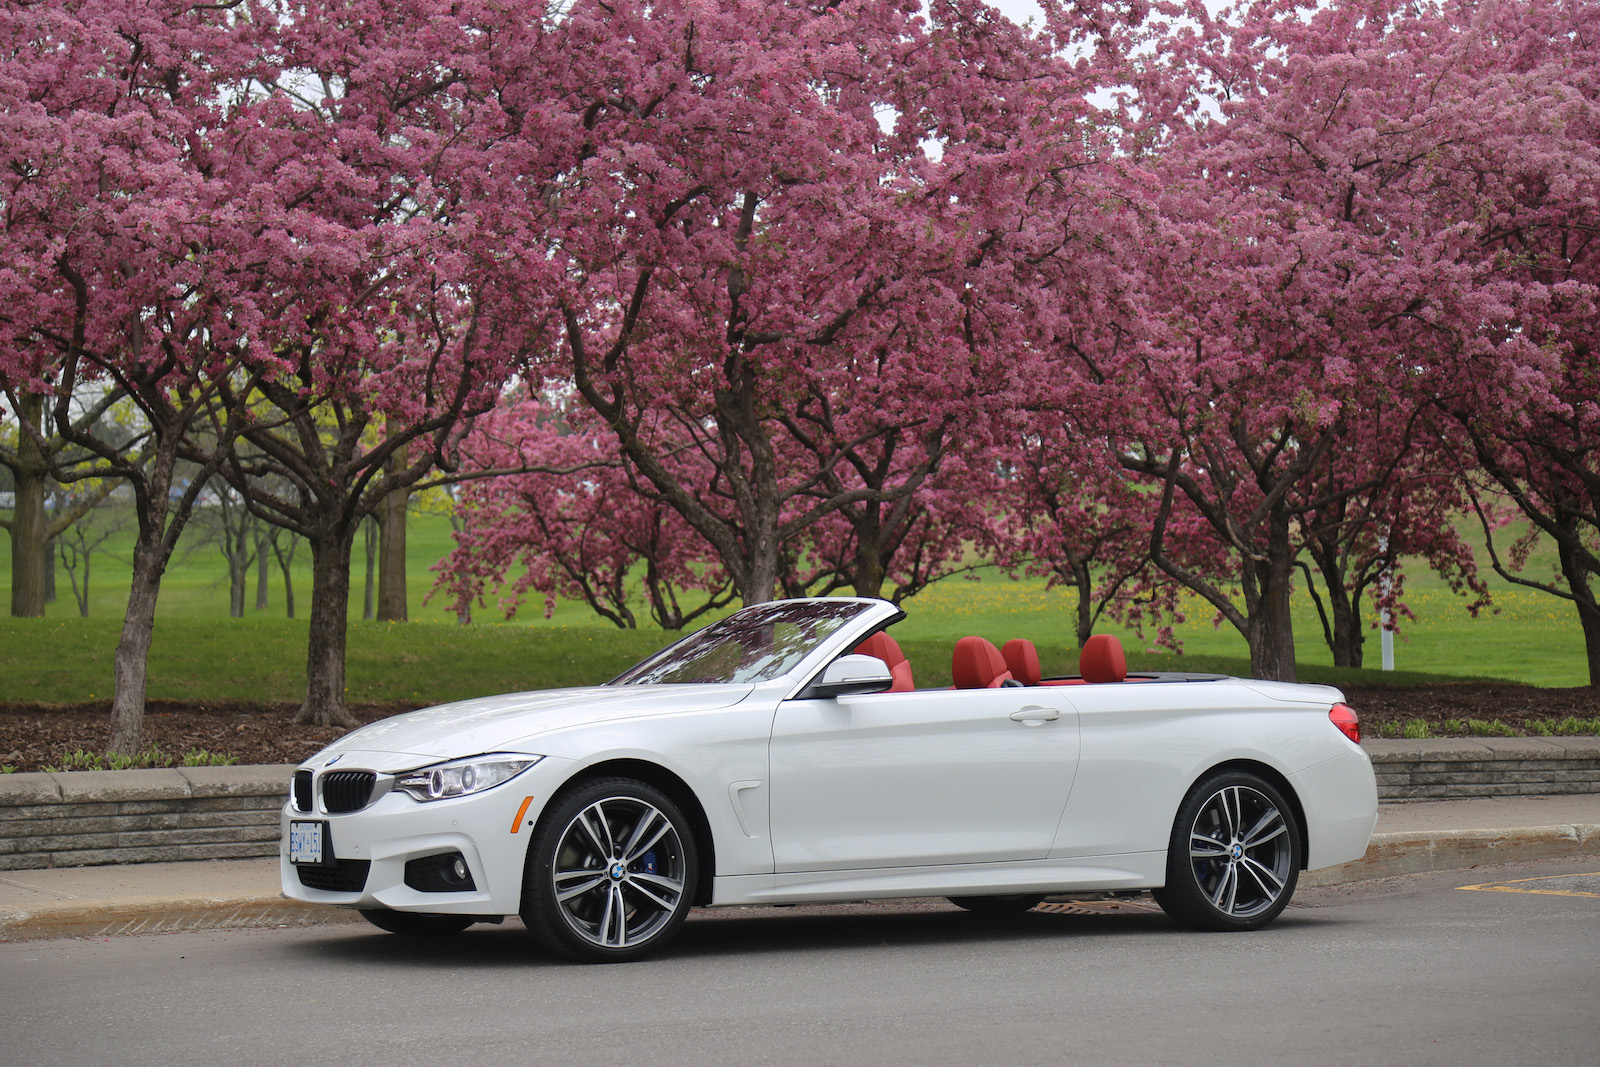 BMW 335I Convertible >> Review: 2015 BMW 435i xDrive Cabriolet | Canadian Auto Review